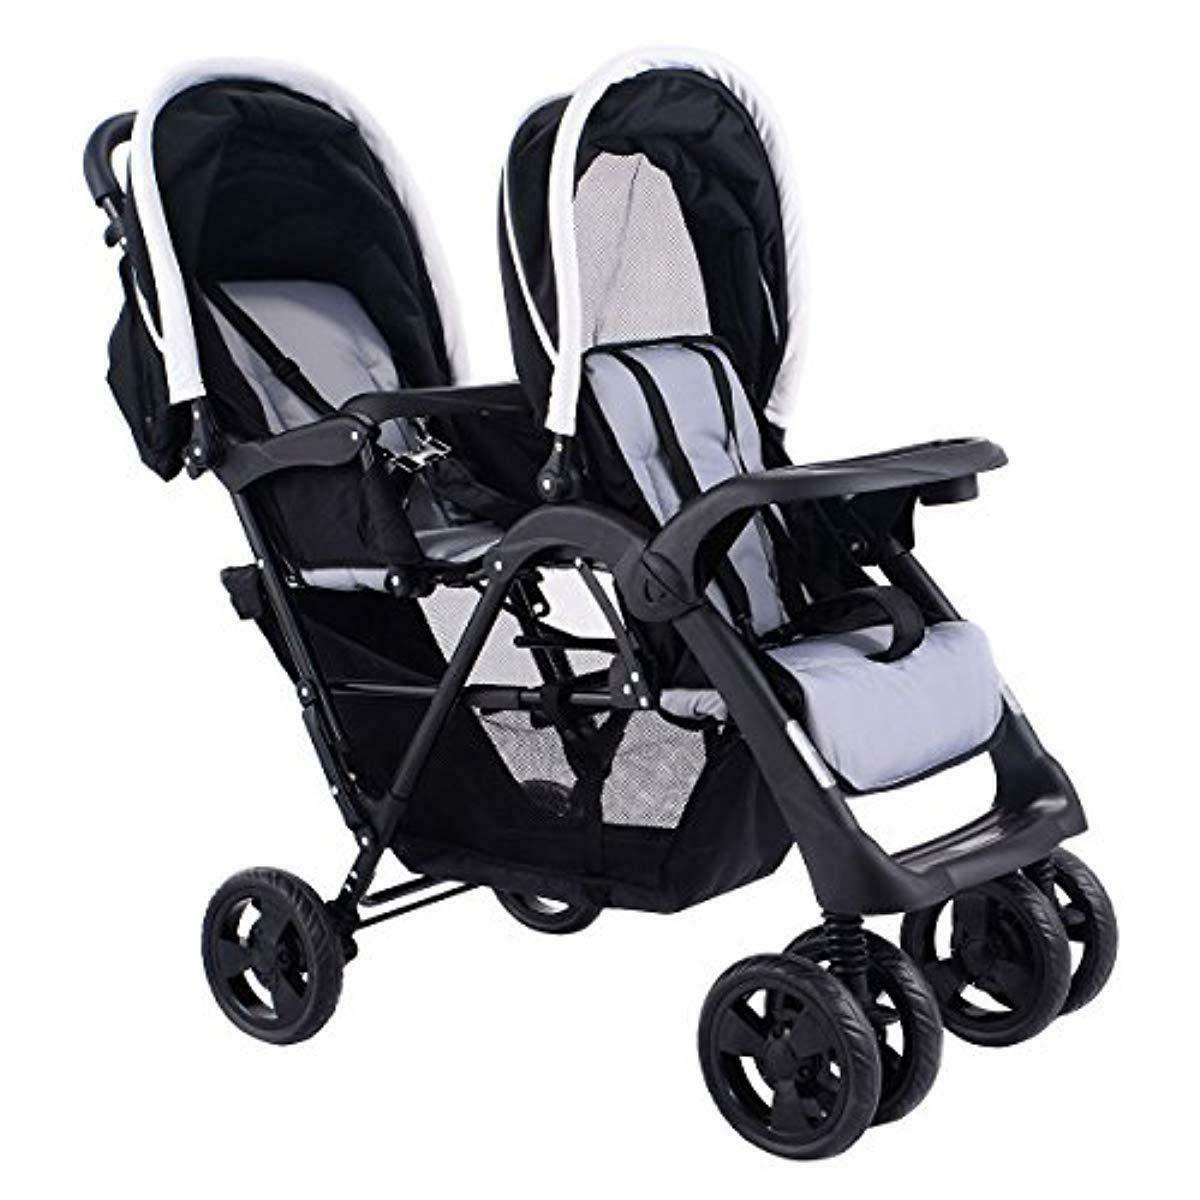 Costzon Foldable Double Baby Pushchair Jogger w/Storage